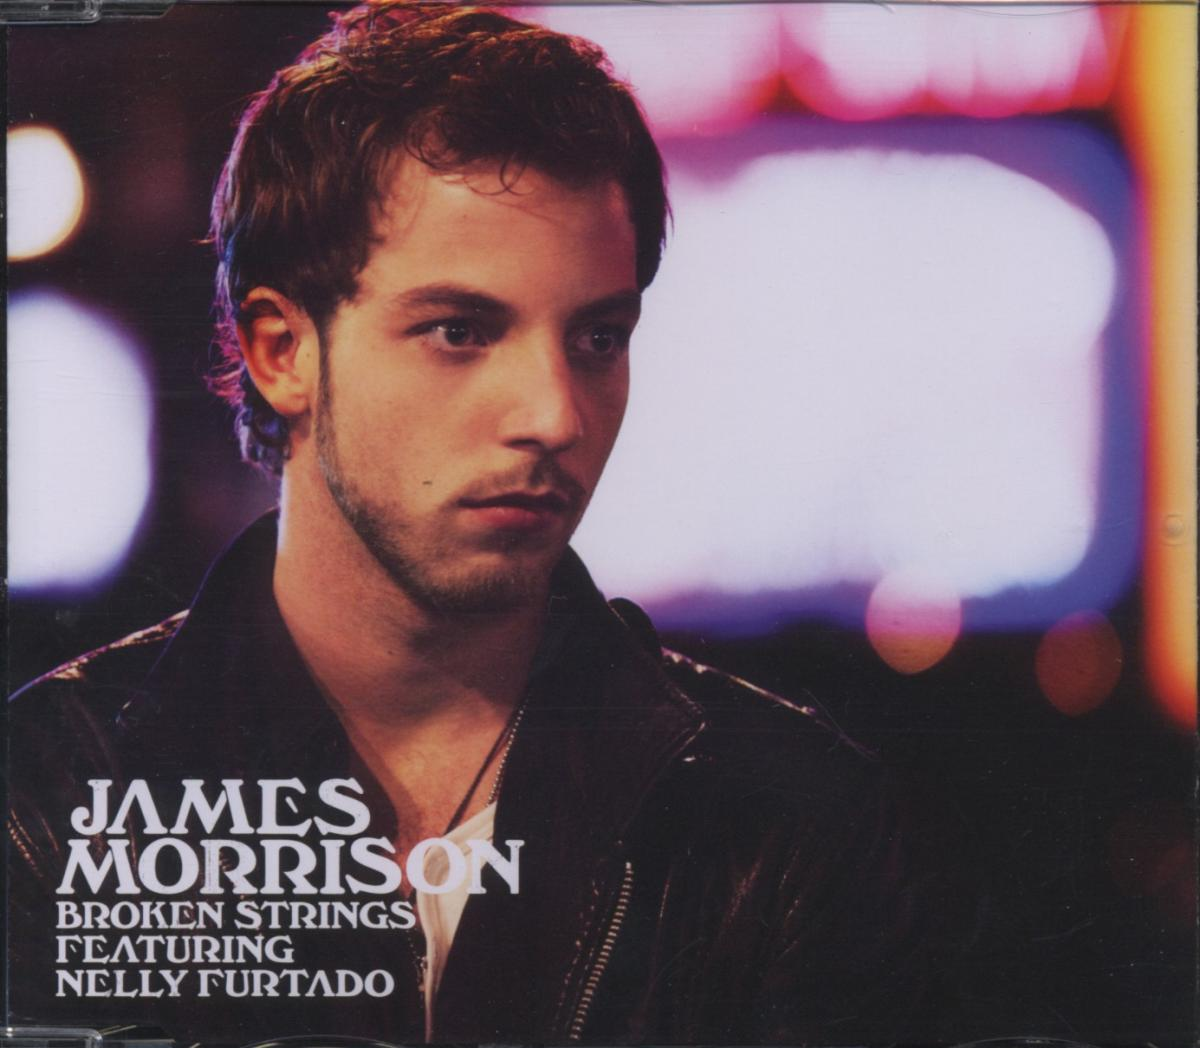 Cover: JAMES MORRISON FEAT. NELLY FUR, BROKEN STRINGS